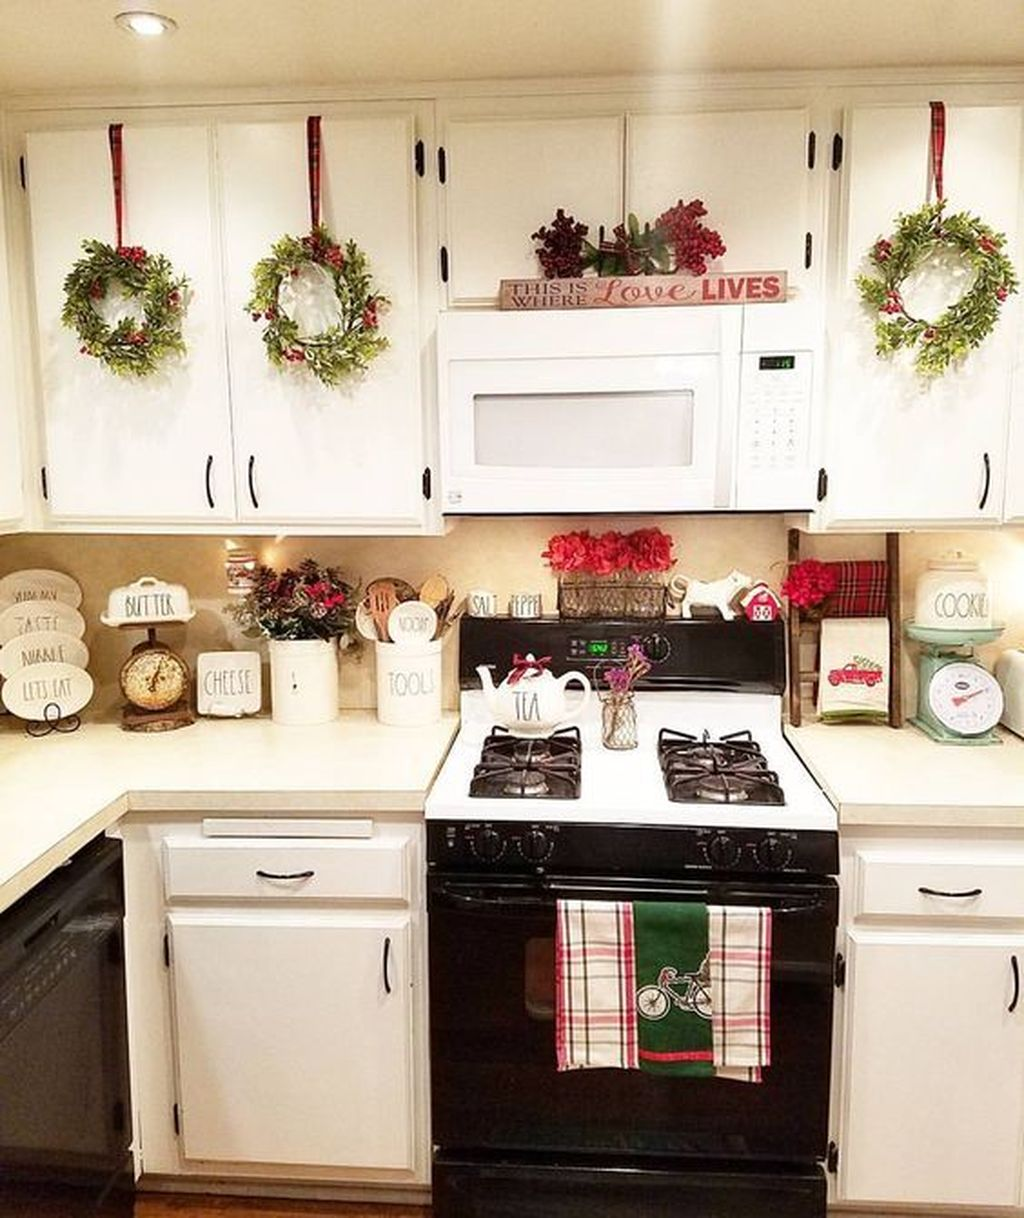 33 Awesome Christmas Theme Kitchen Decor Ideas - HMDCRTN